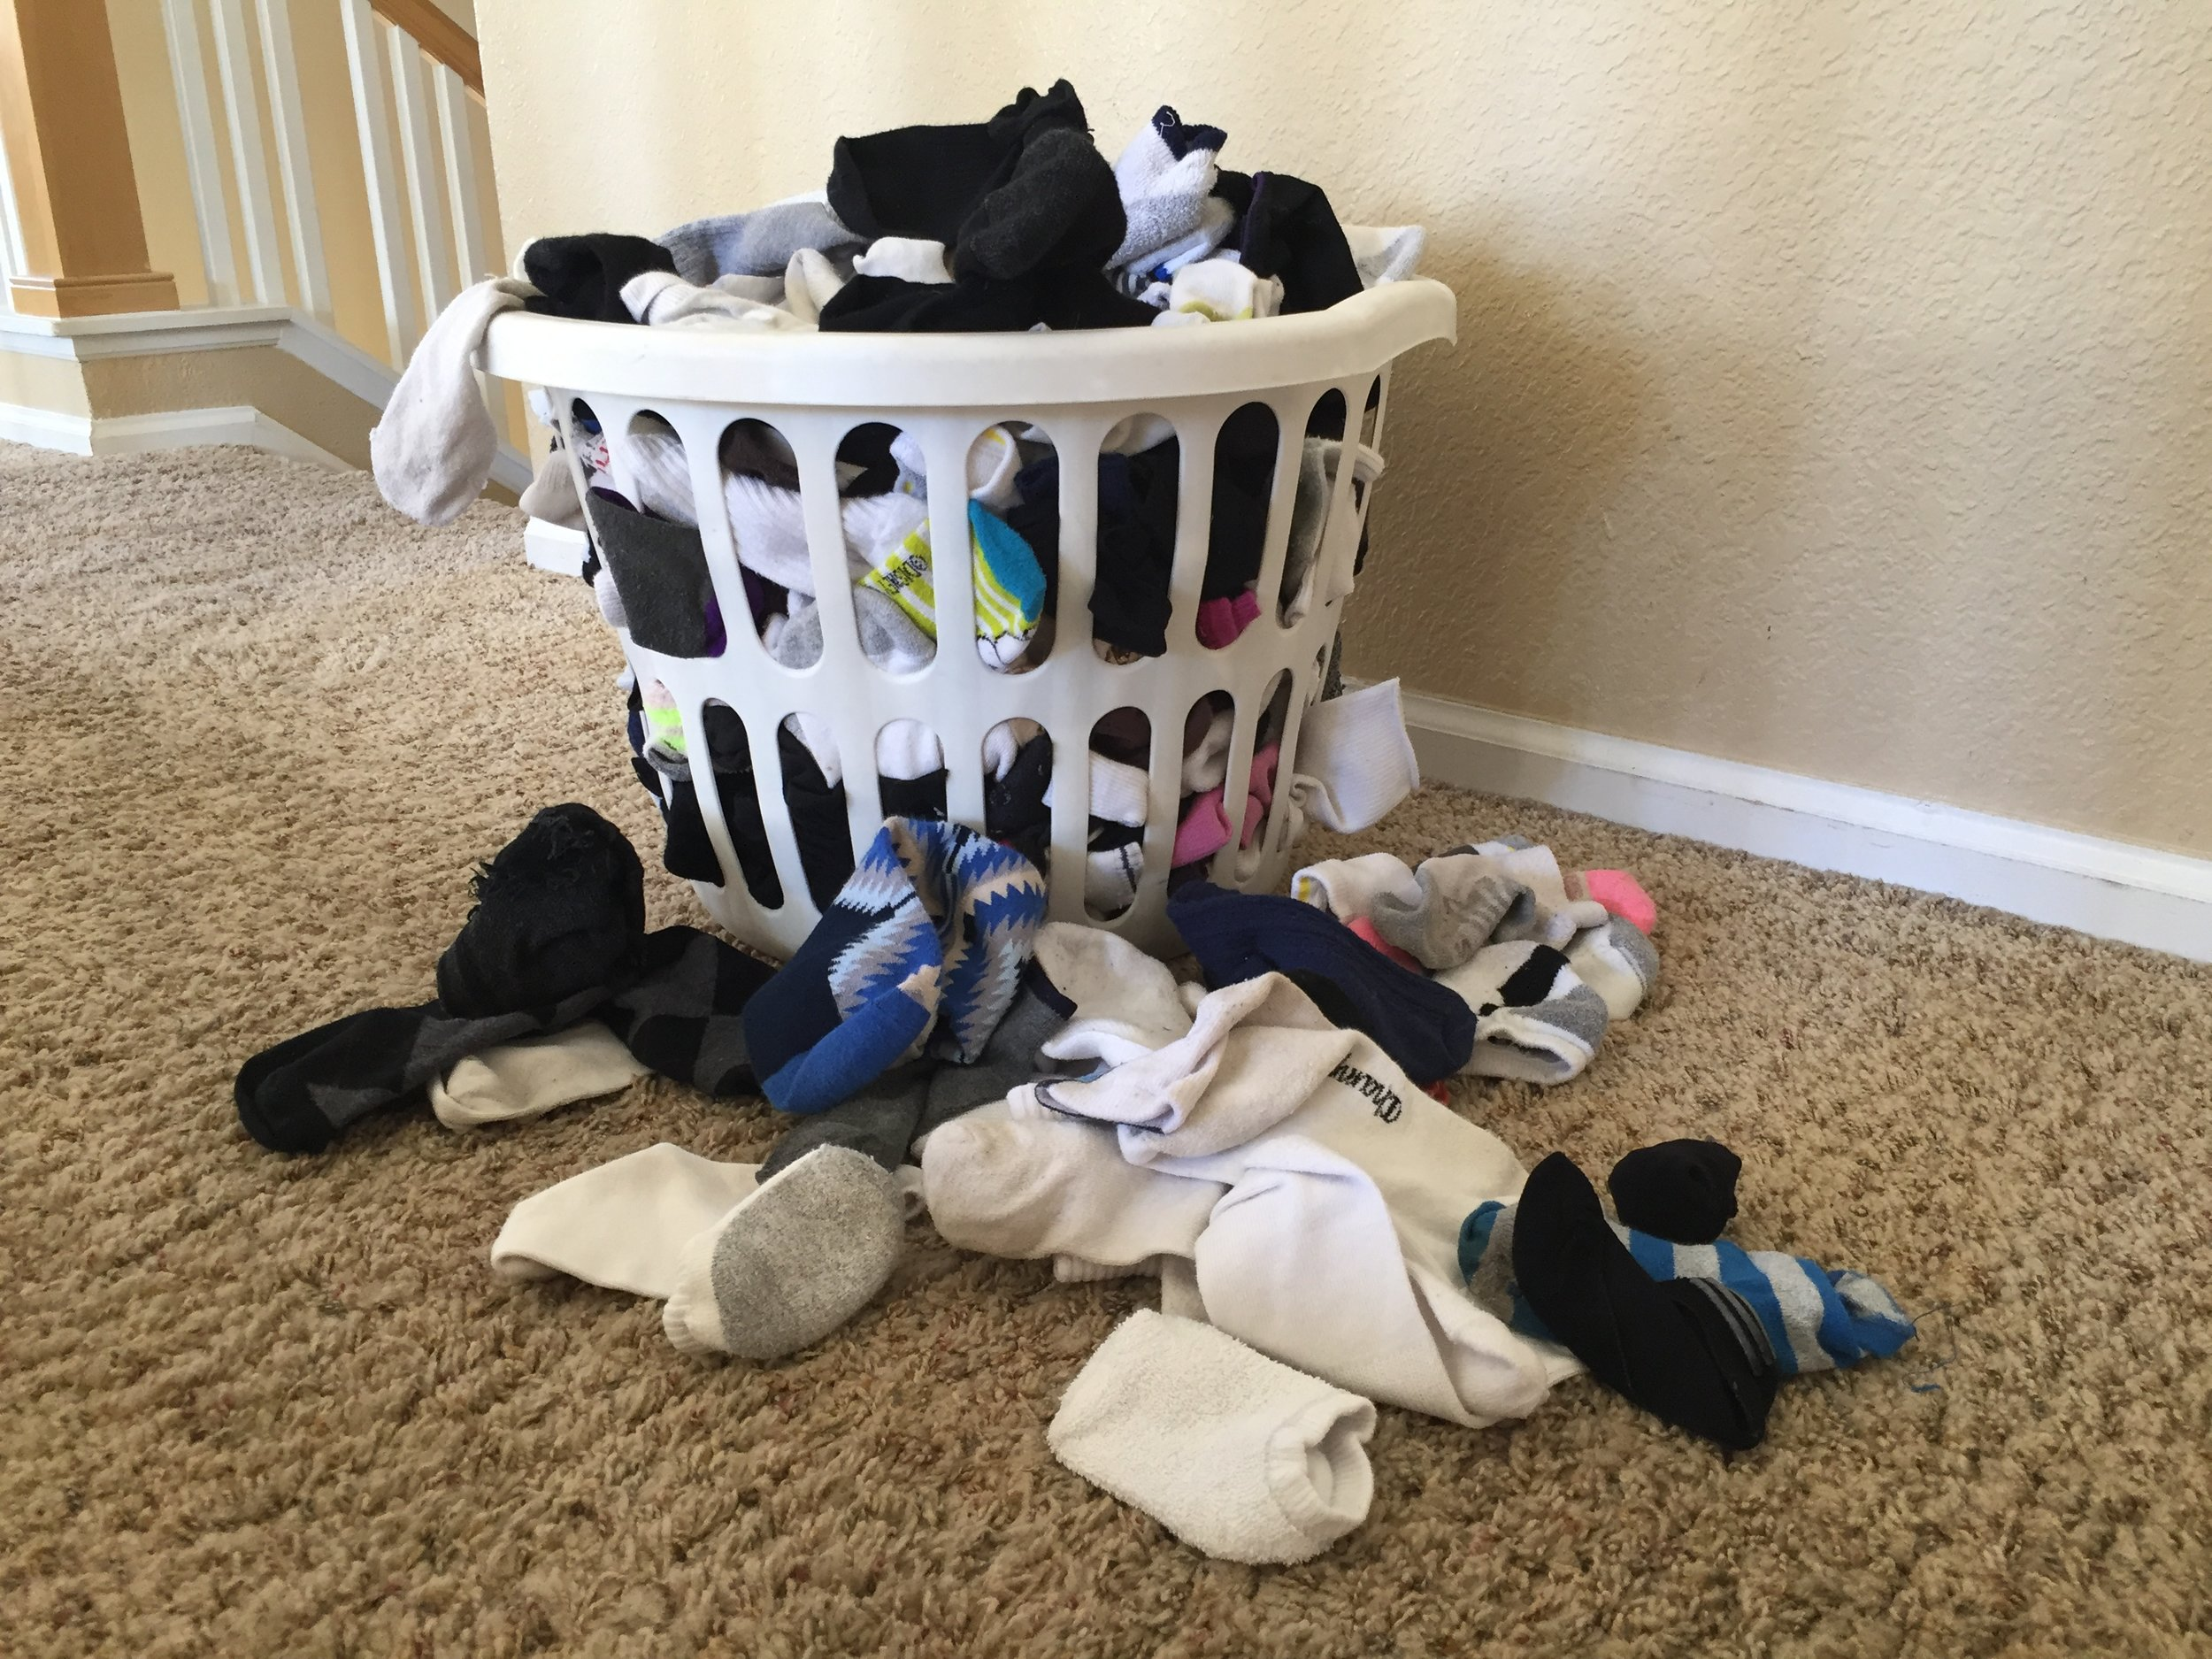 Molly  pays her kids $1 for every ten socks they sort and put away.